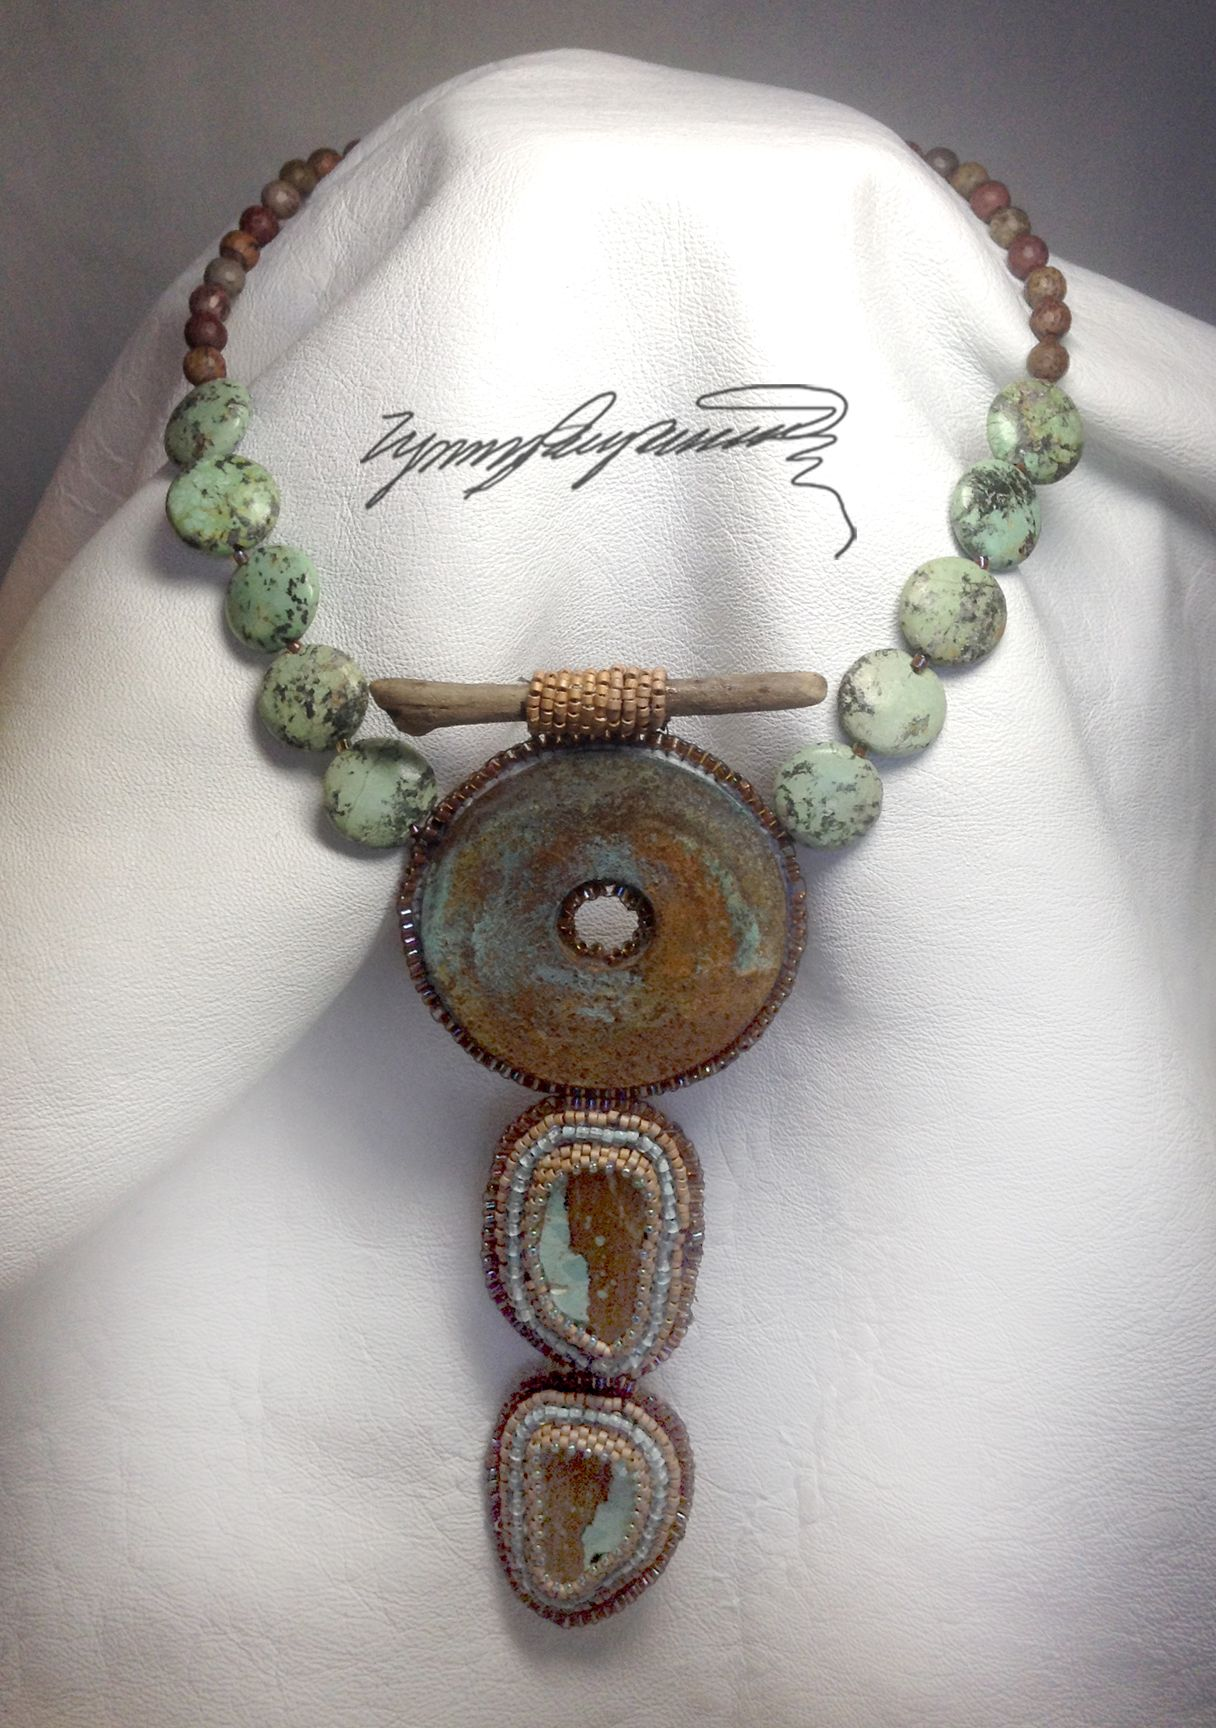 https://www.etsy.com/shop/LynnParpard?ref=pr_shop_more One of a Kind ART Piece Made one bead at a time WOW